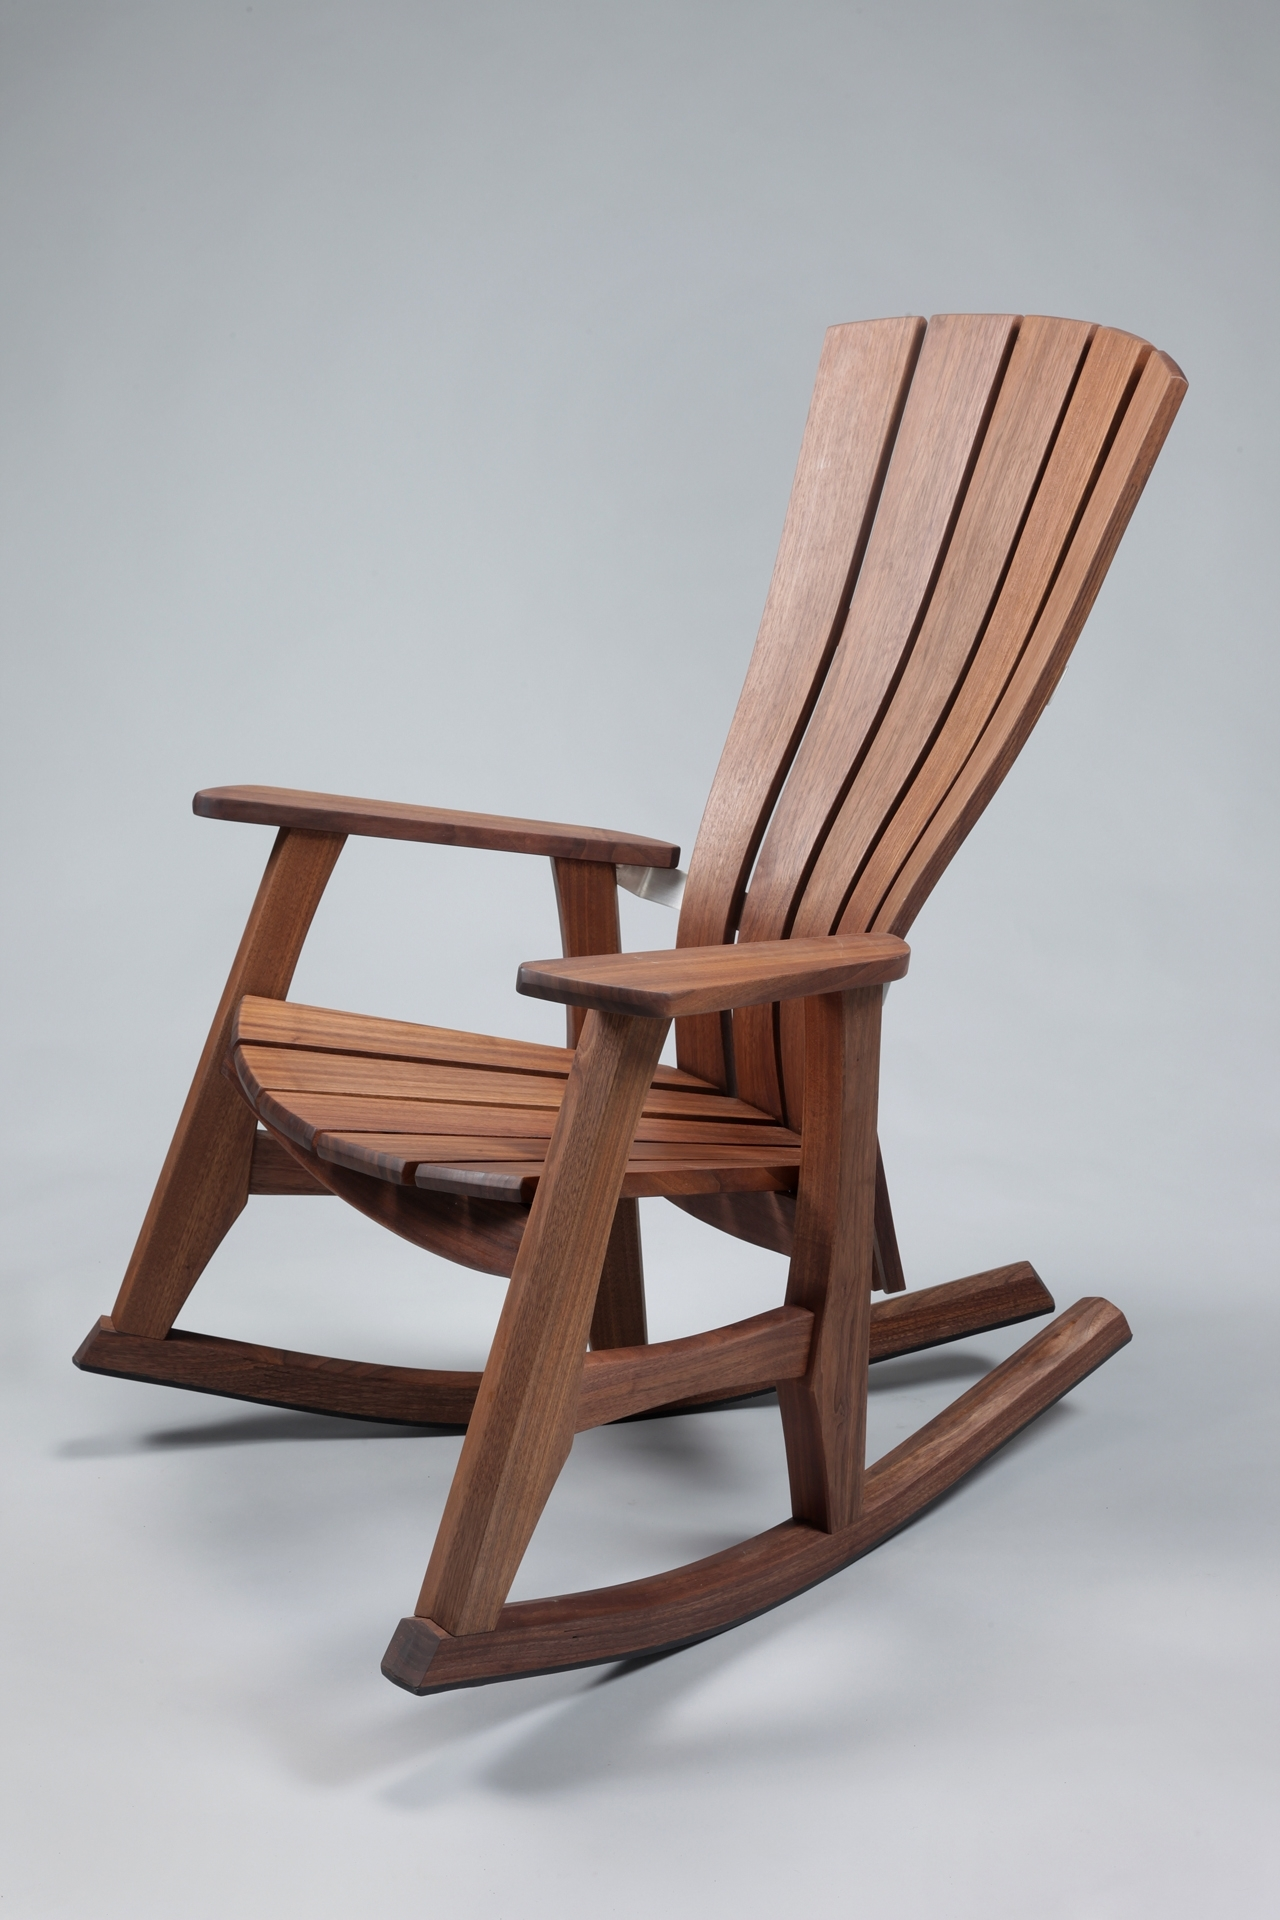 Outdoor Wooden Rocking Chairs Back : Pleasure Outdoor Wooden Rocking In Rocking Chair Outdoor Wooden (View 10 of 15)